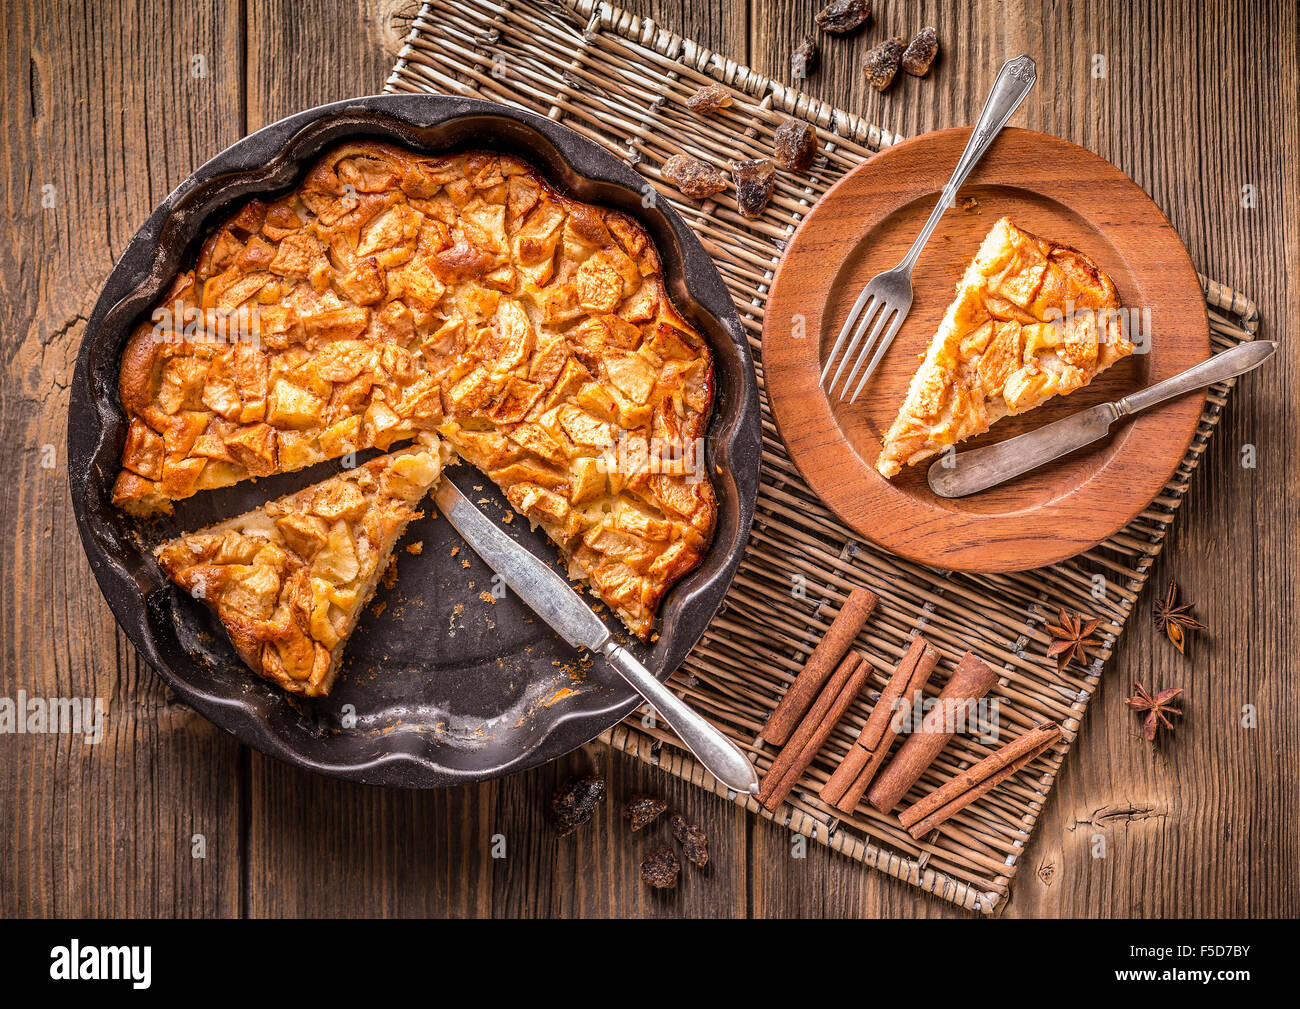 Top view of homemade apple pie, sliced - Stock Image